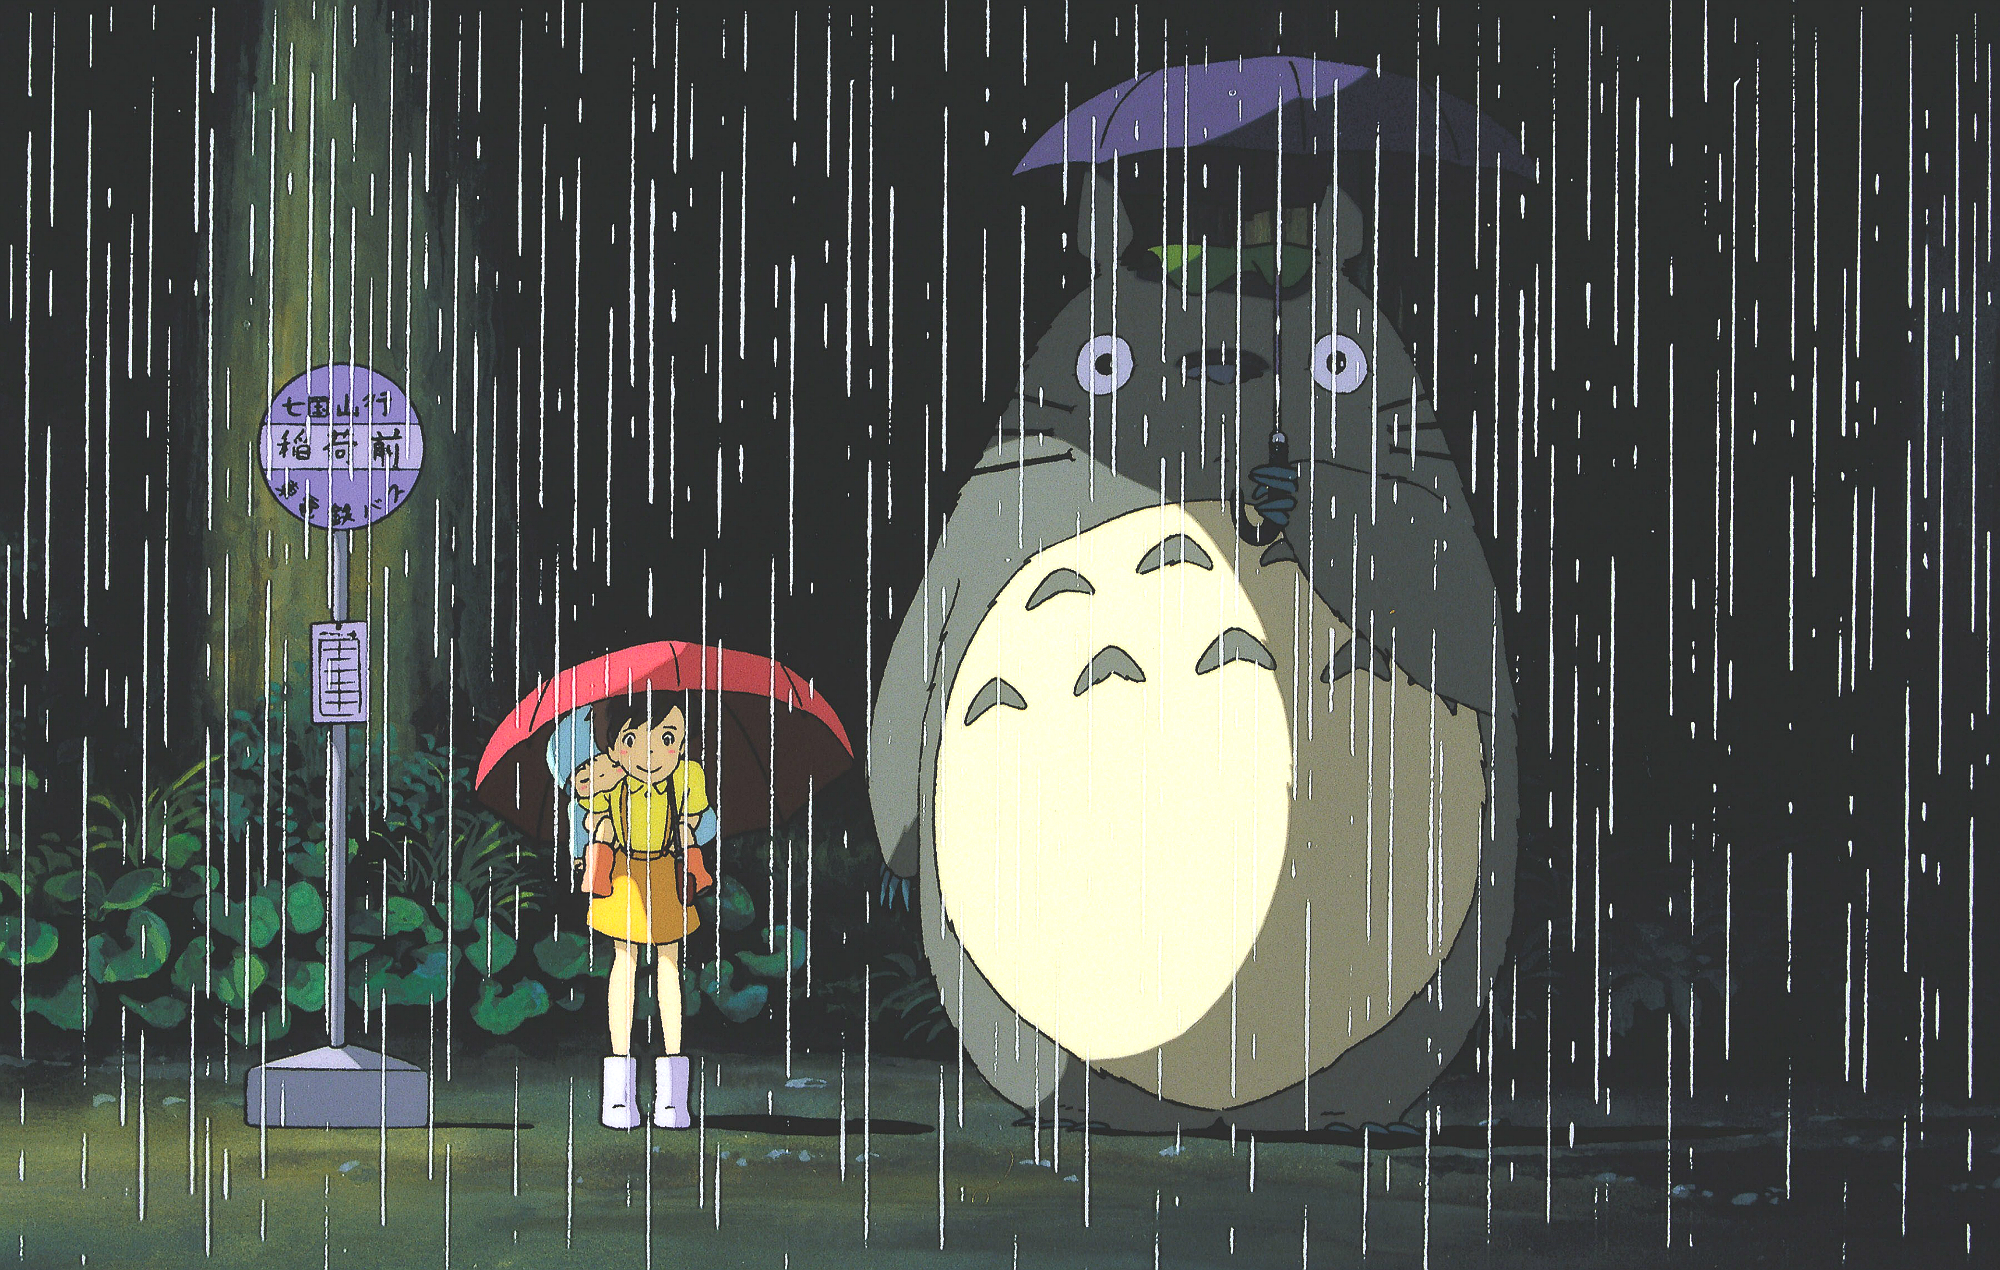 Studio Ghibli Offer Fans Free Virtual Backgrounds To Use In Video